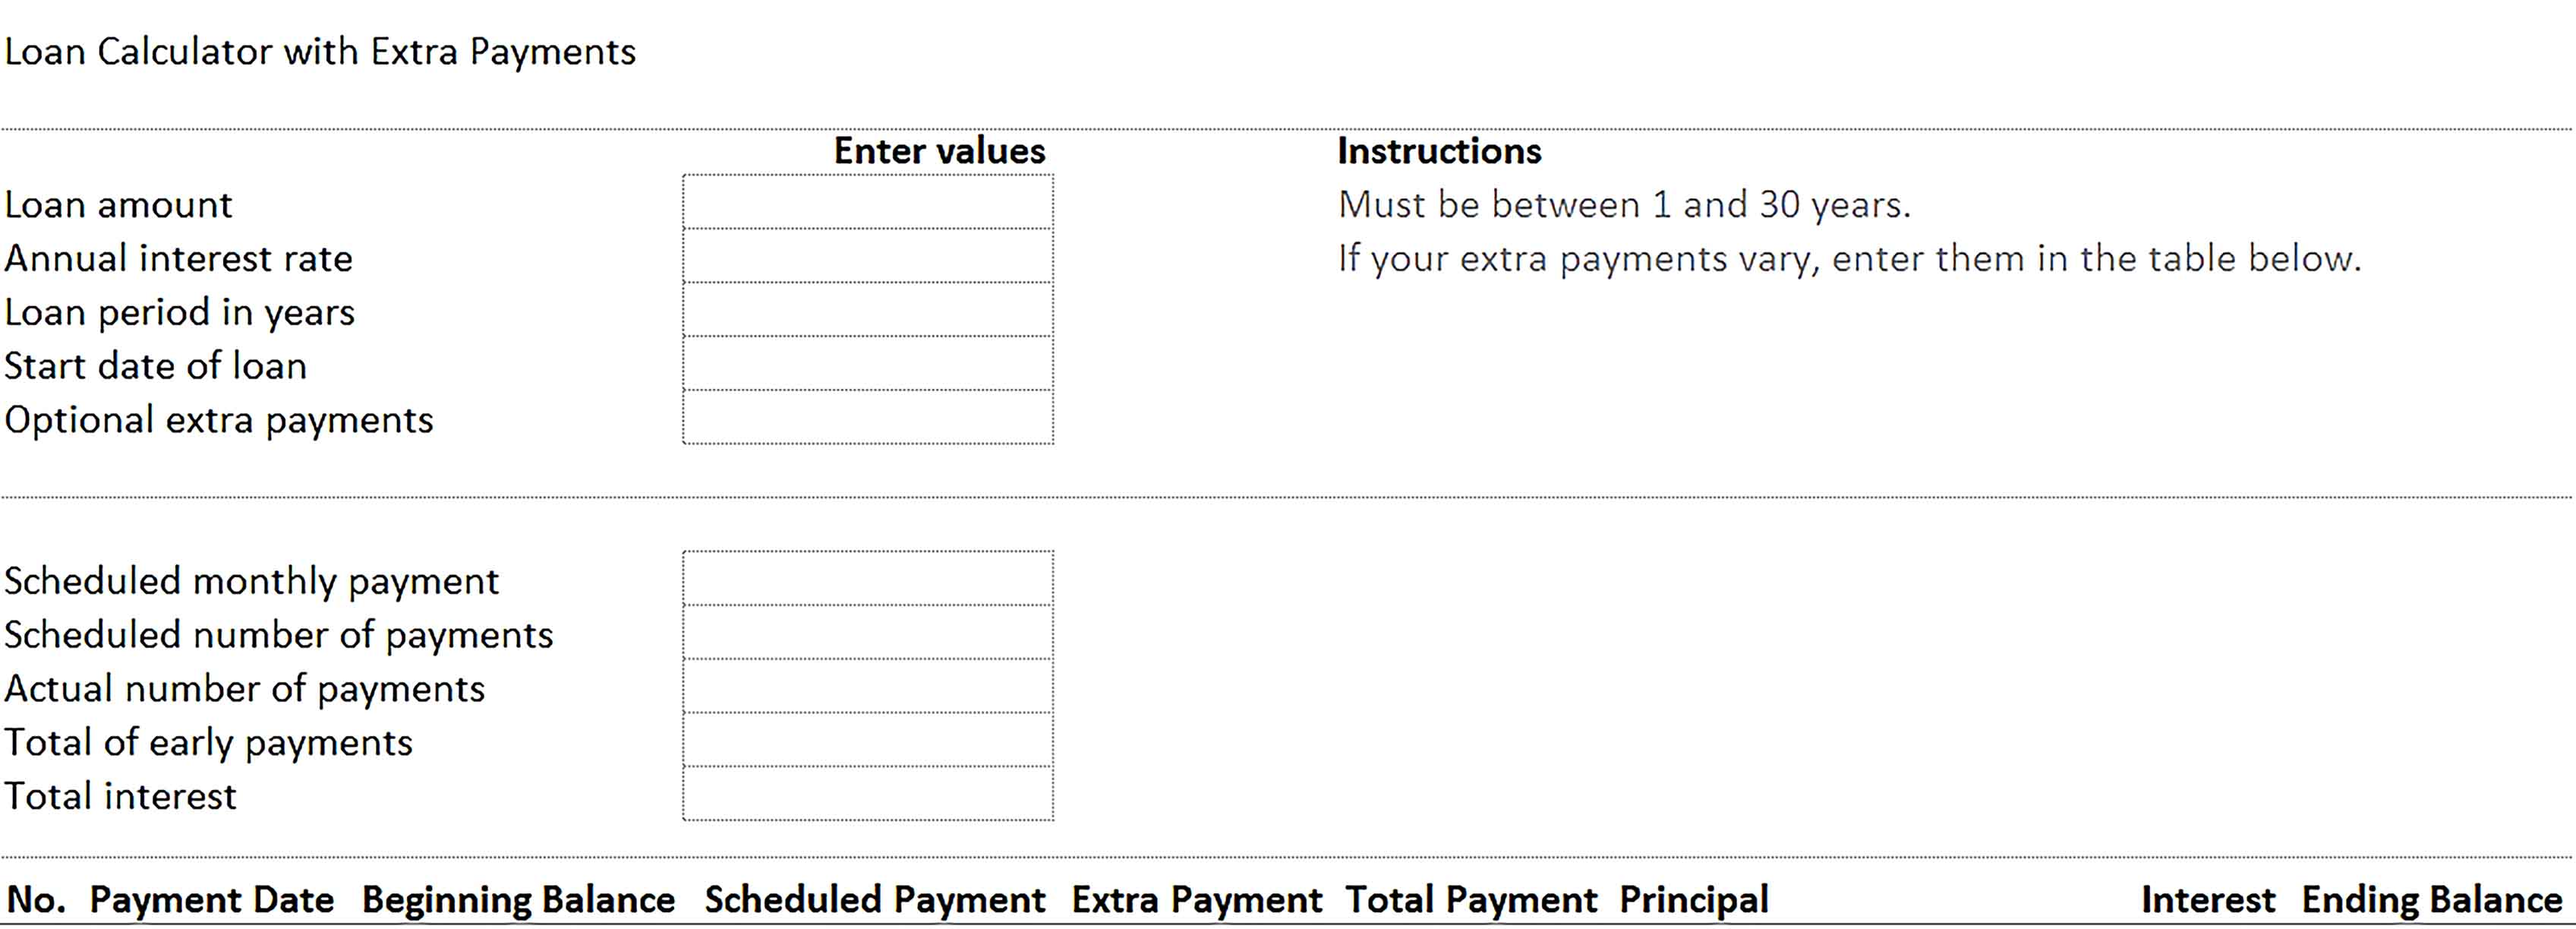 Template Car Loan Amortization Schedule with Extra Payments Sample